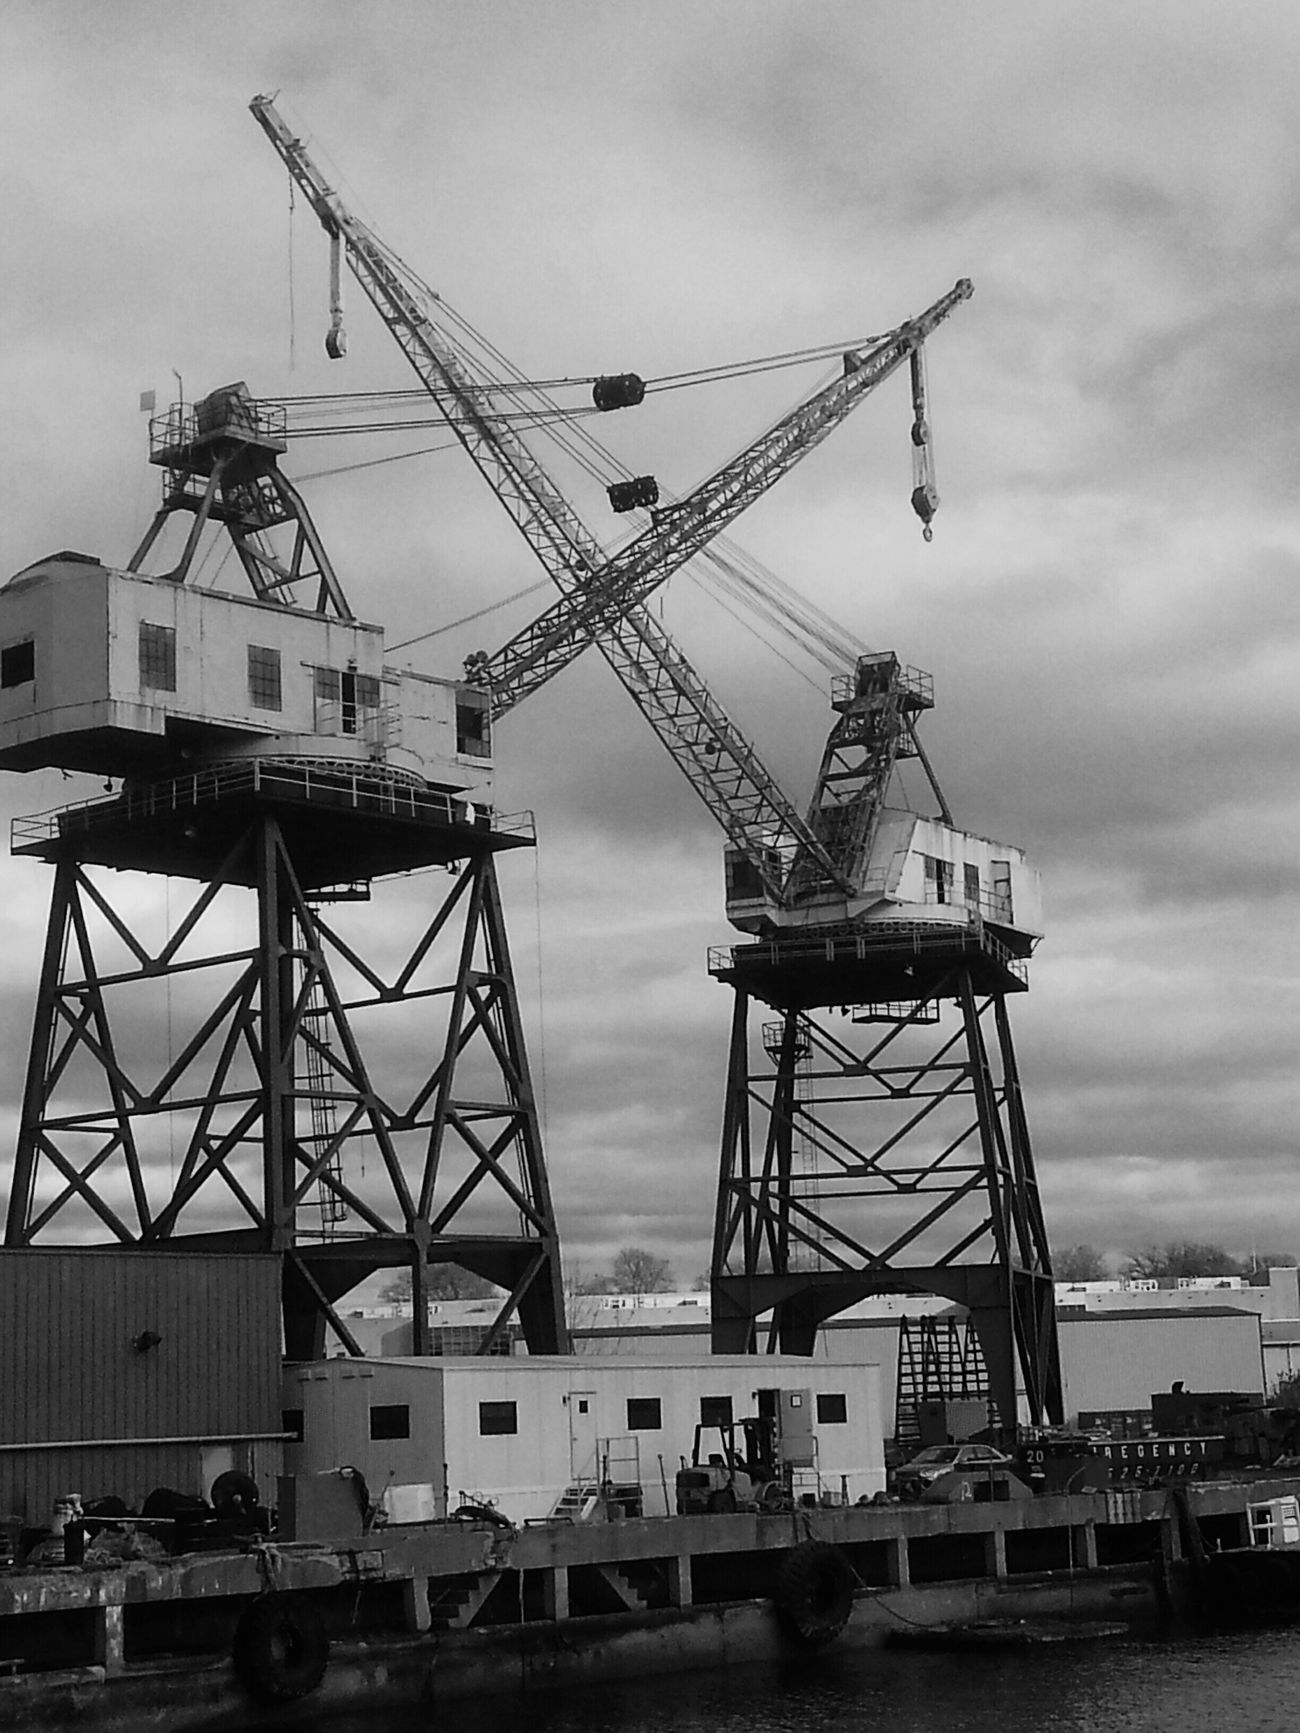 Brooklyn Navy Yard Taking Photos Williamsburg Bridge B&w